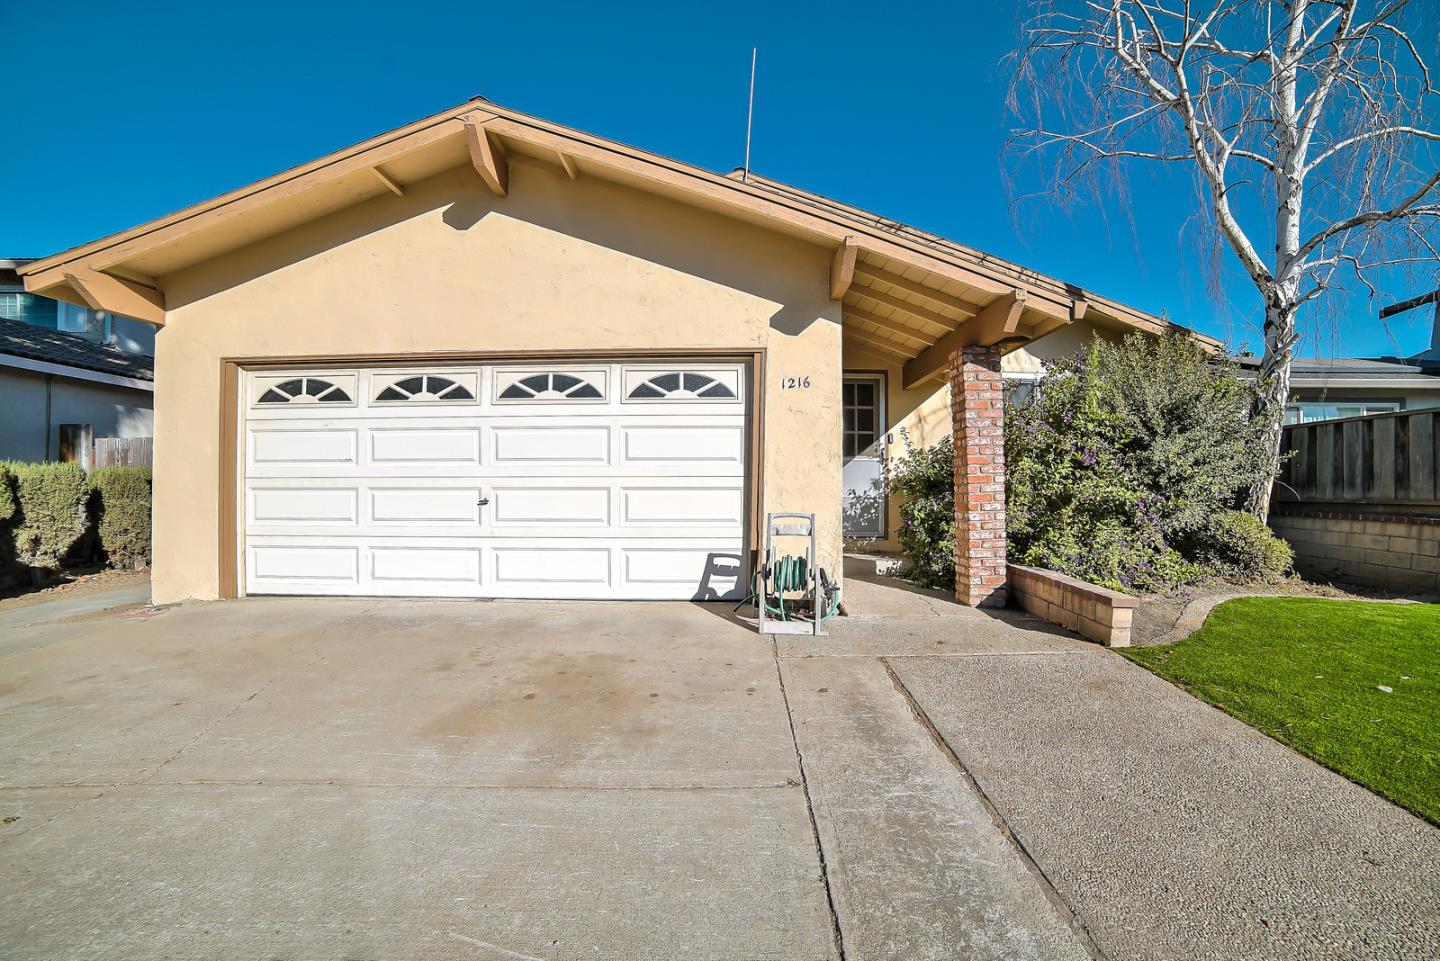 1216 MOONLIGHT WAY, MILPITAS, CA 95035